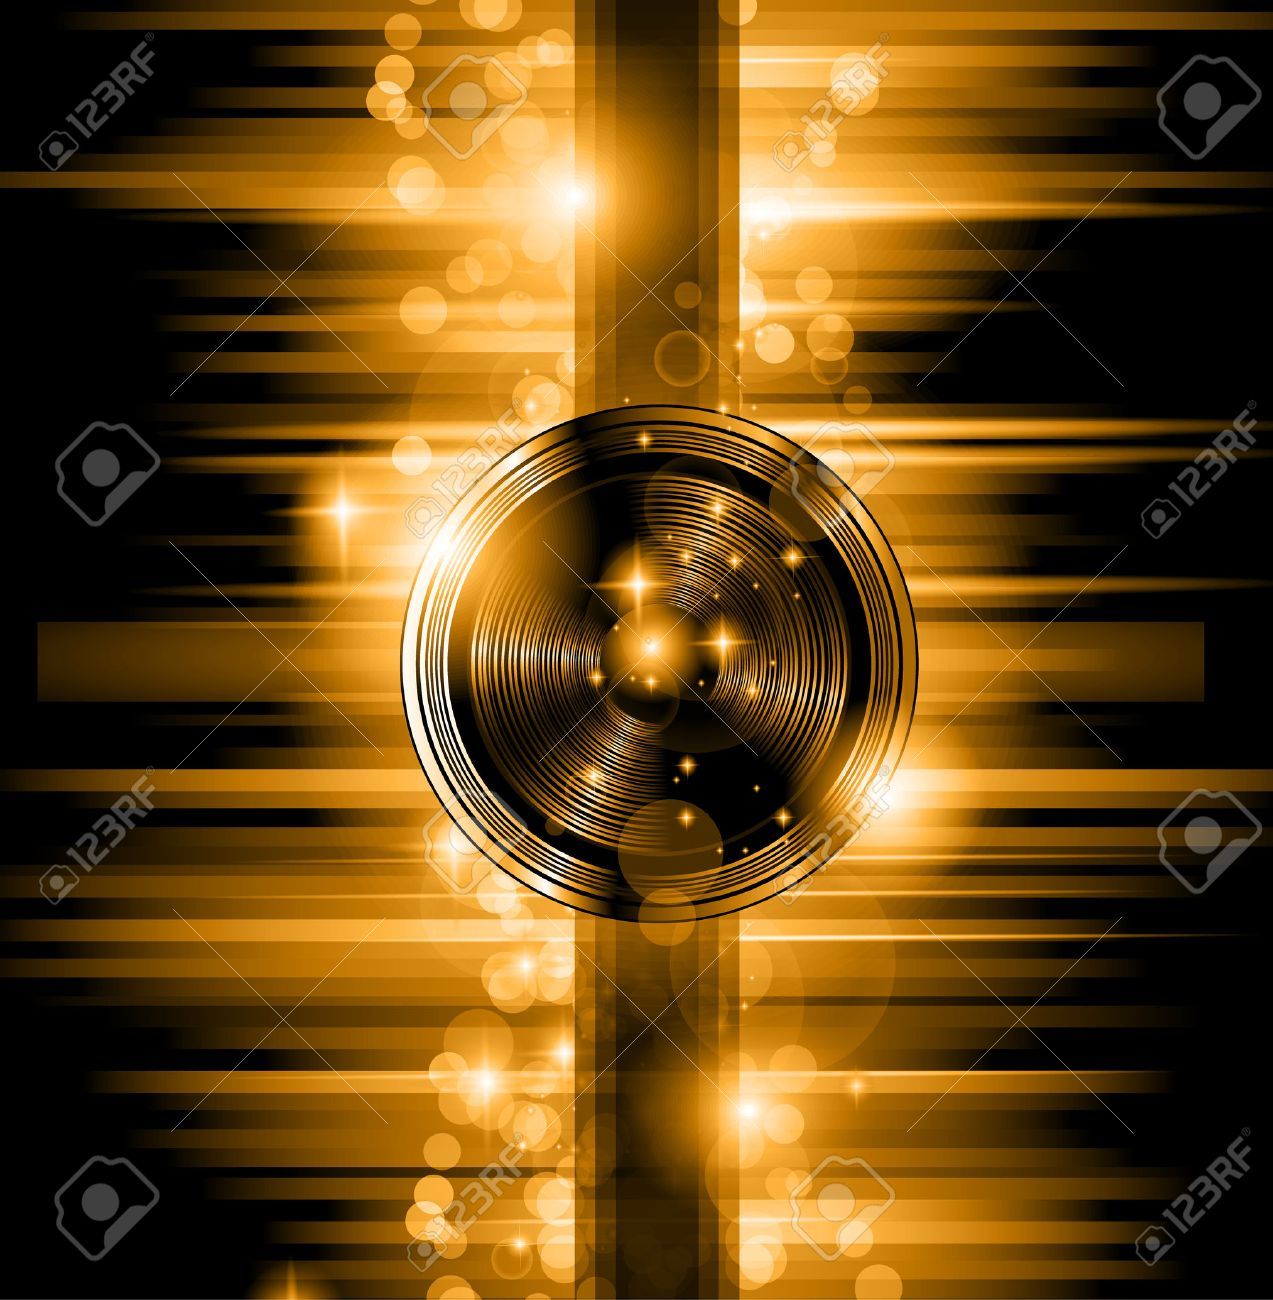 The Art of Disco Flyer - Stunning Speakers shape and a lot of stars and ray lights. Stock Vector - 22417758